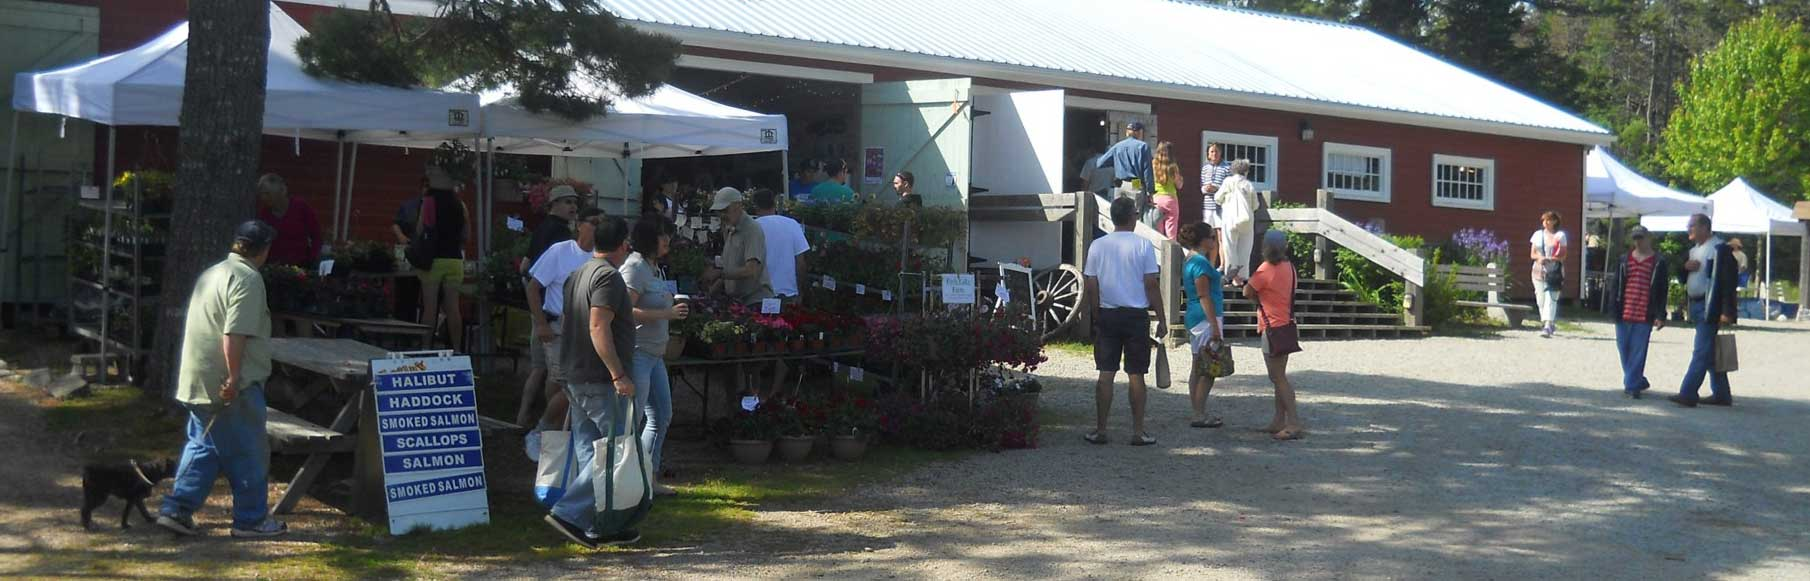 Farmers' Market Day at the Hubbards Barn